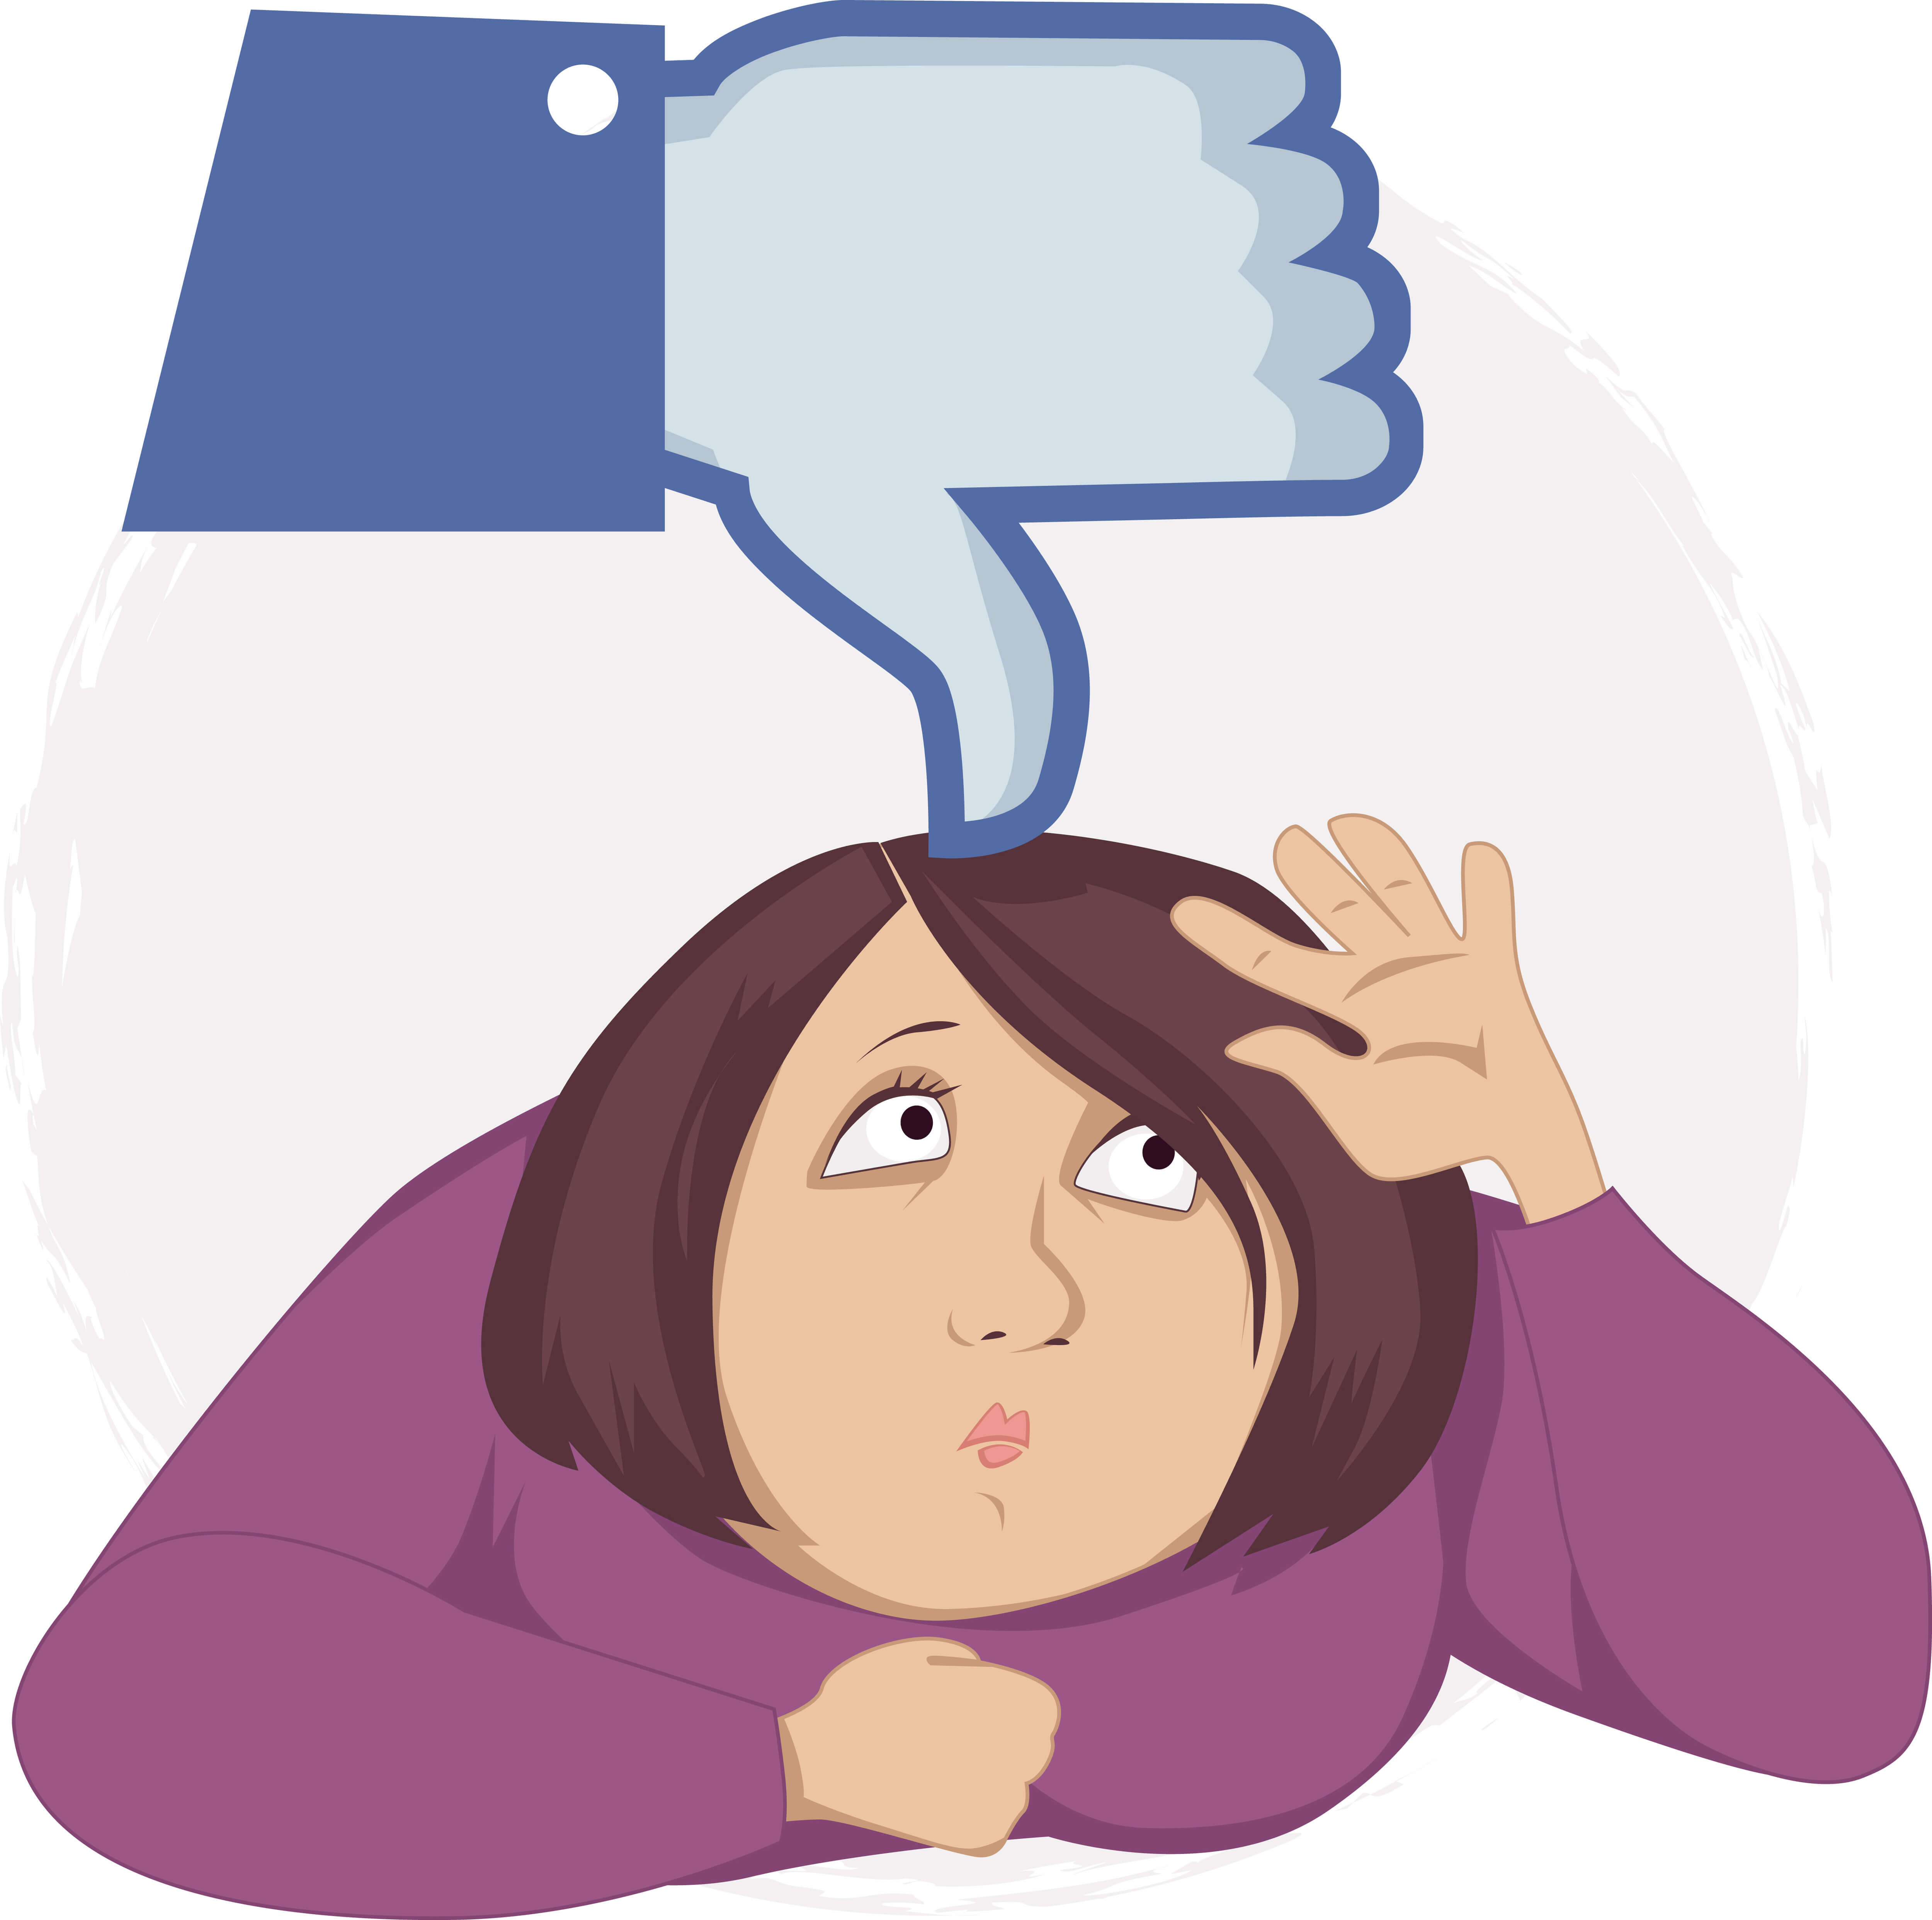 Are your social media comments unprofessional?